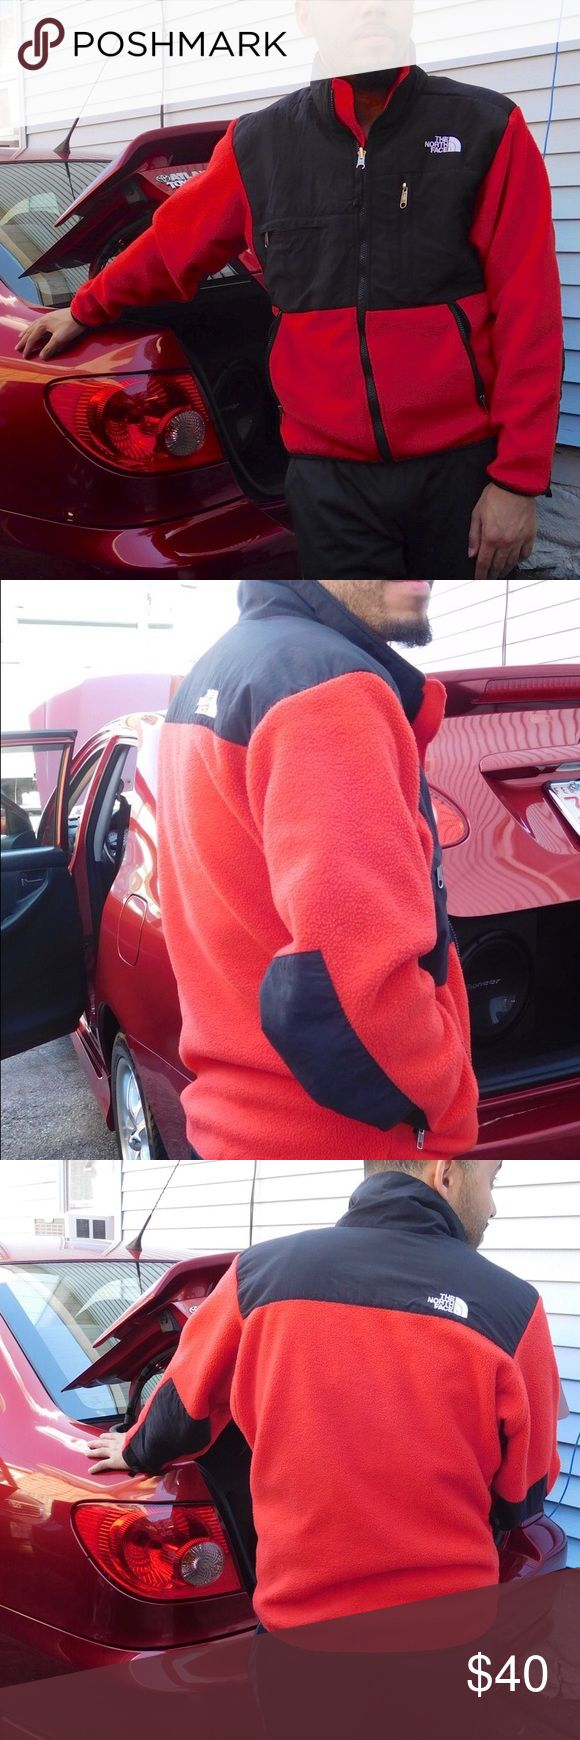 Red North face Denali Fleece Jacket XS Used men's The North Face Fleece jacket. Has minor pilling on inside. Great overall condition! North Face Jackets & Coats